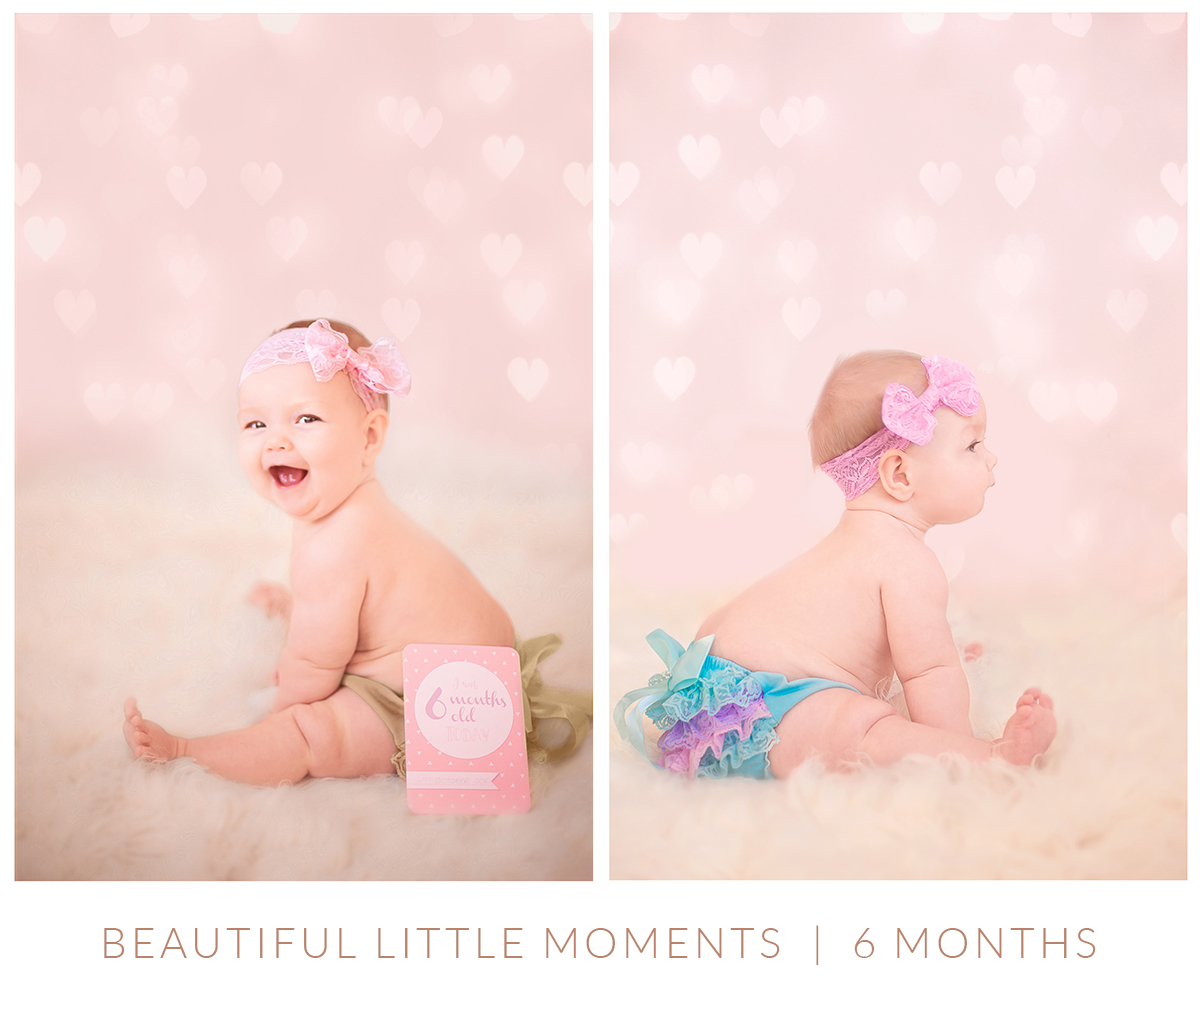 6 month baby milestone photography surrey